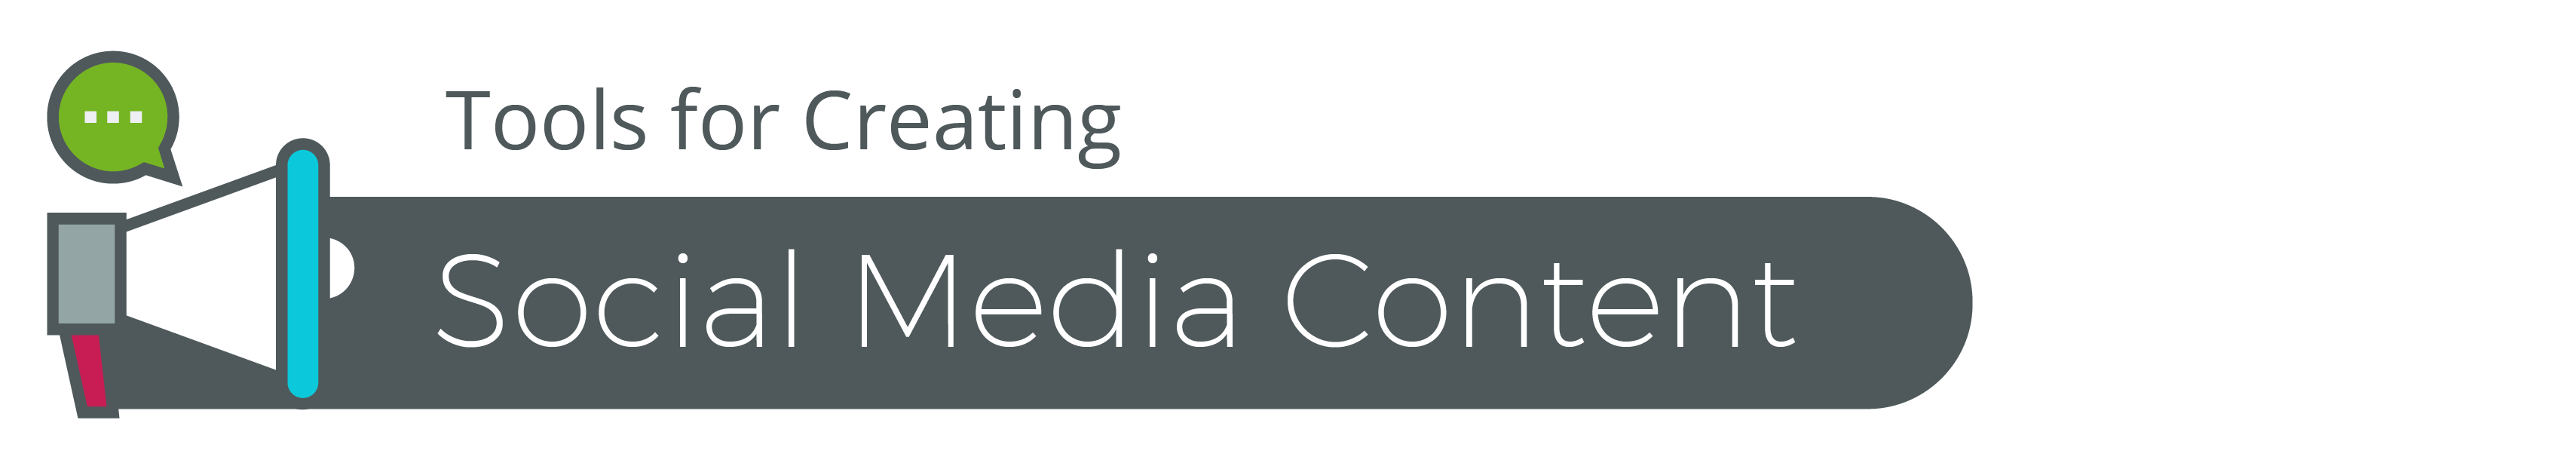 Best tools for Social Media Content Creation